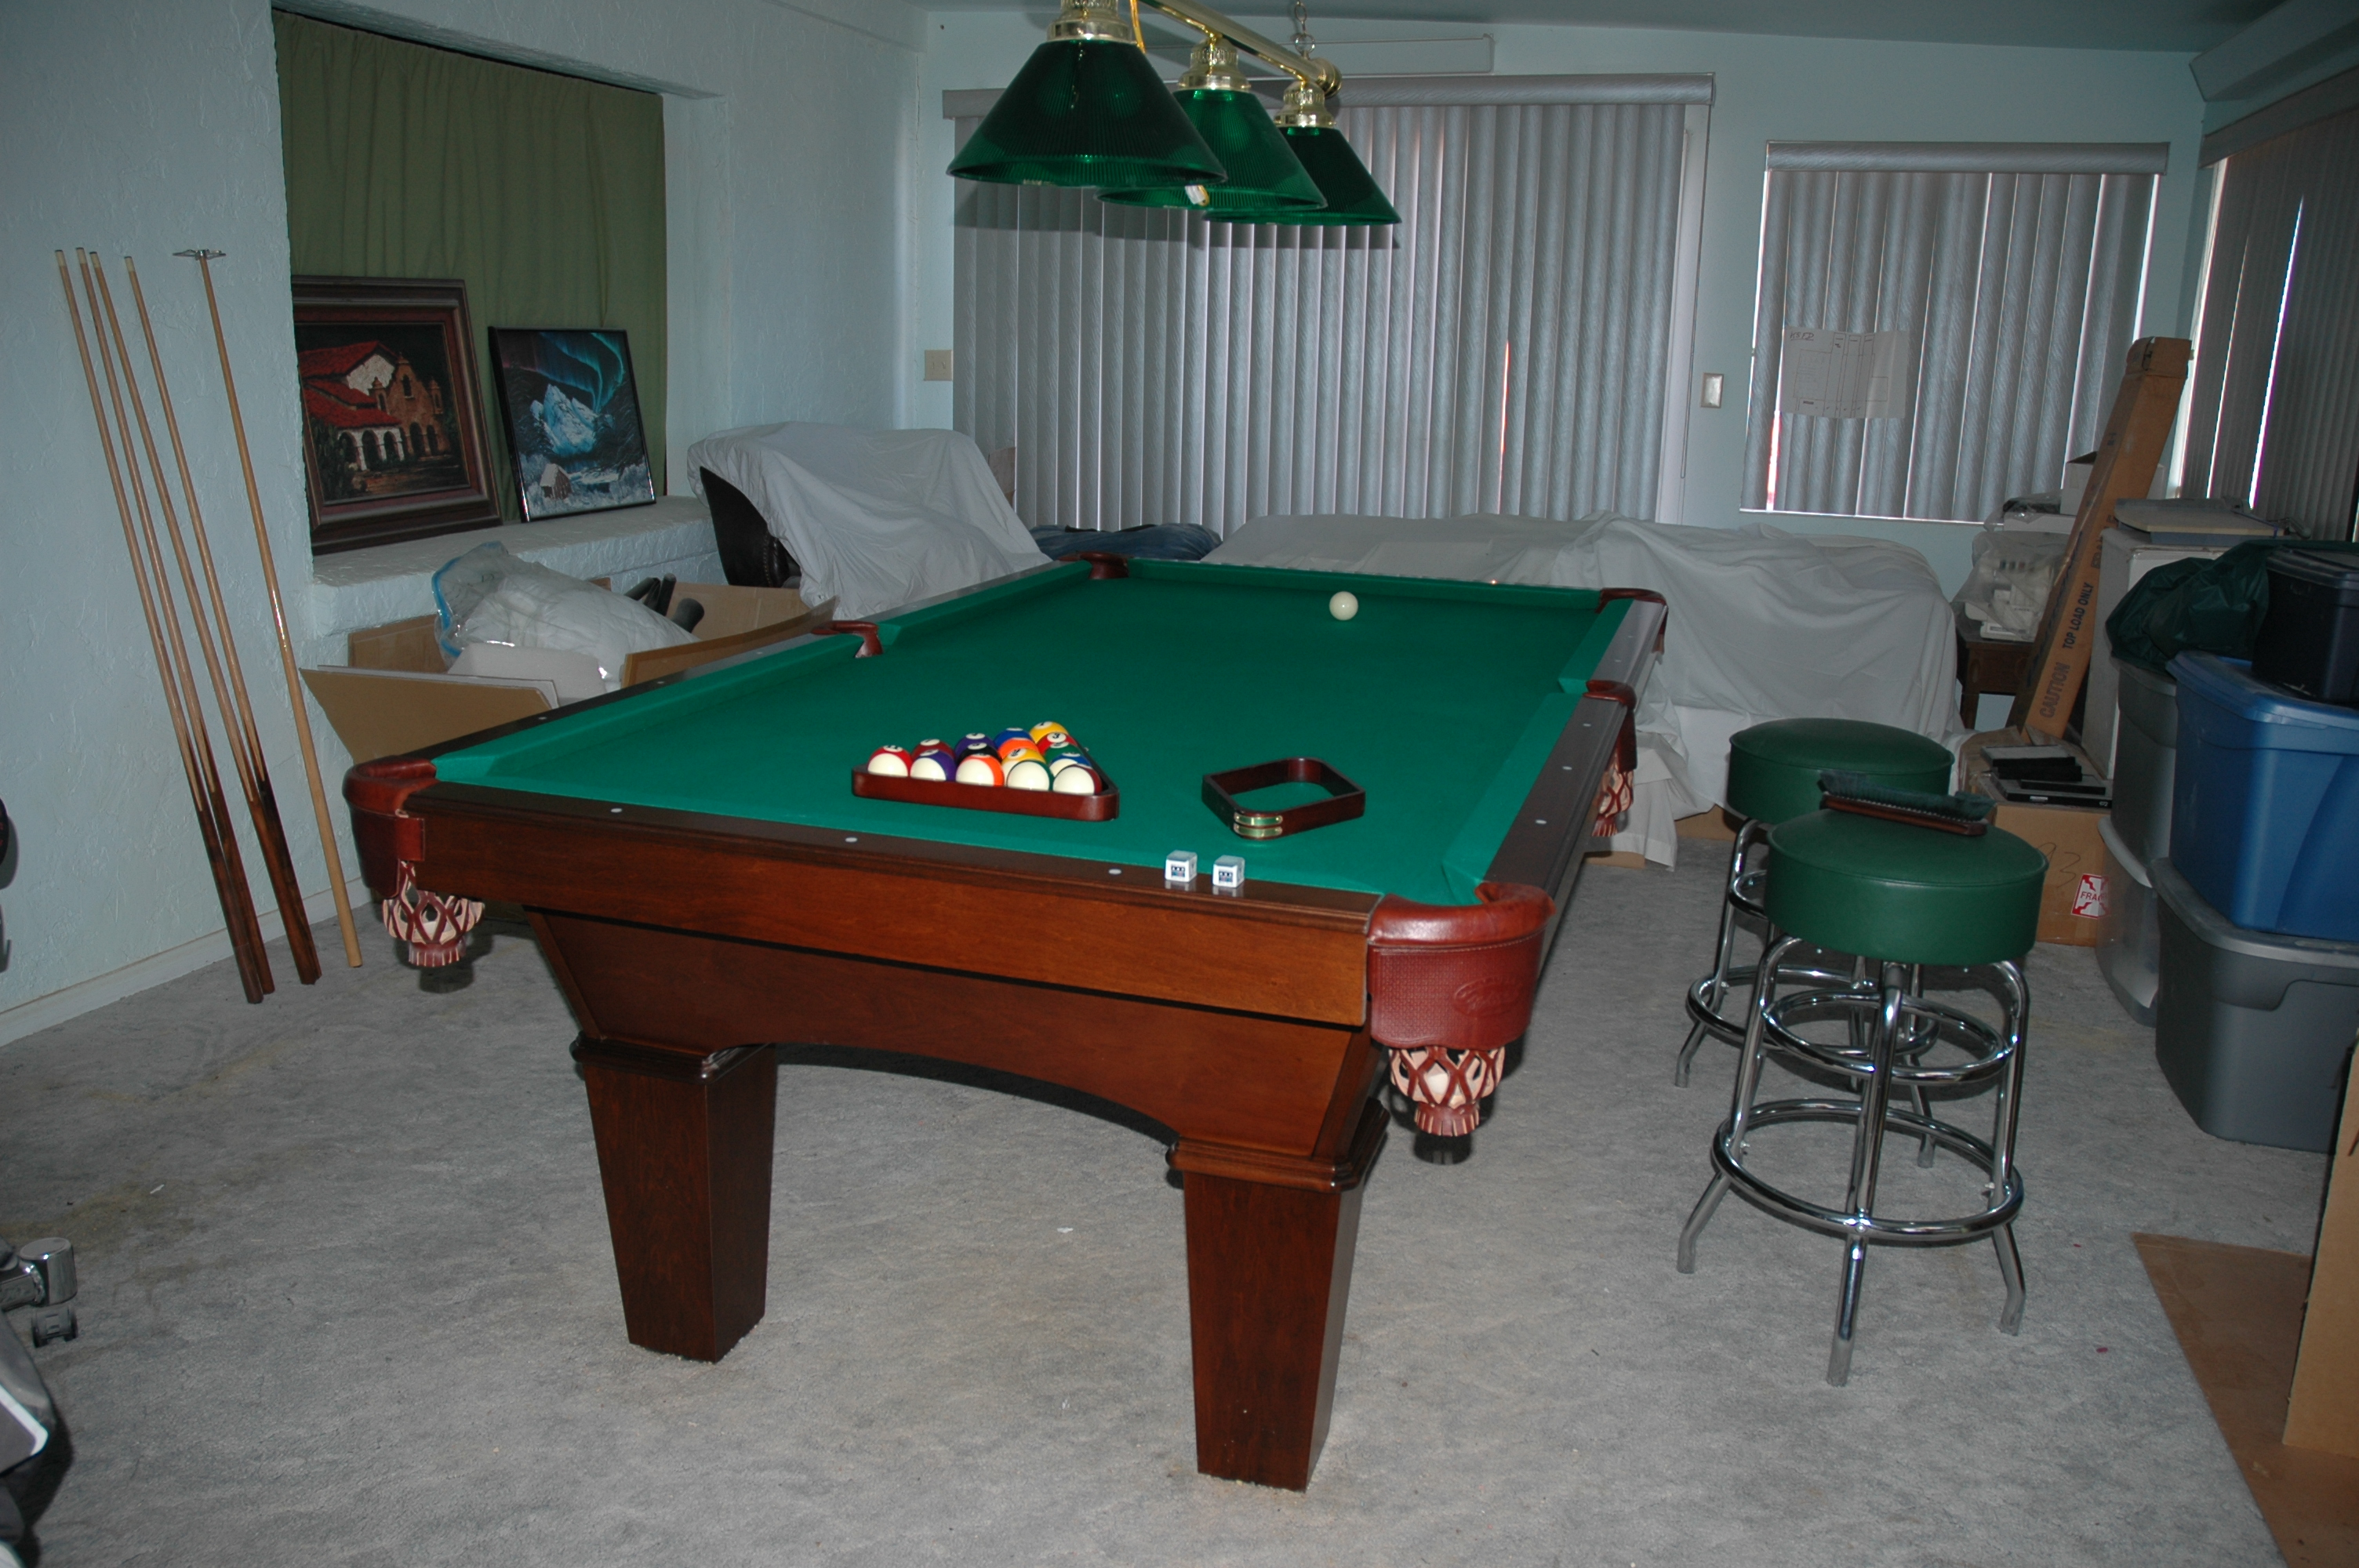 Used Olhausen Pool Table For Sale - Olhausen reno pool table